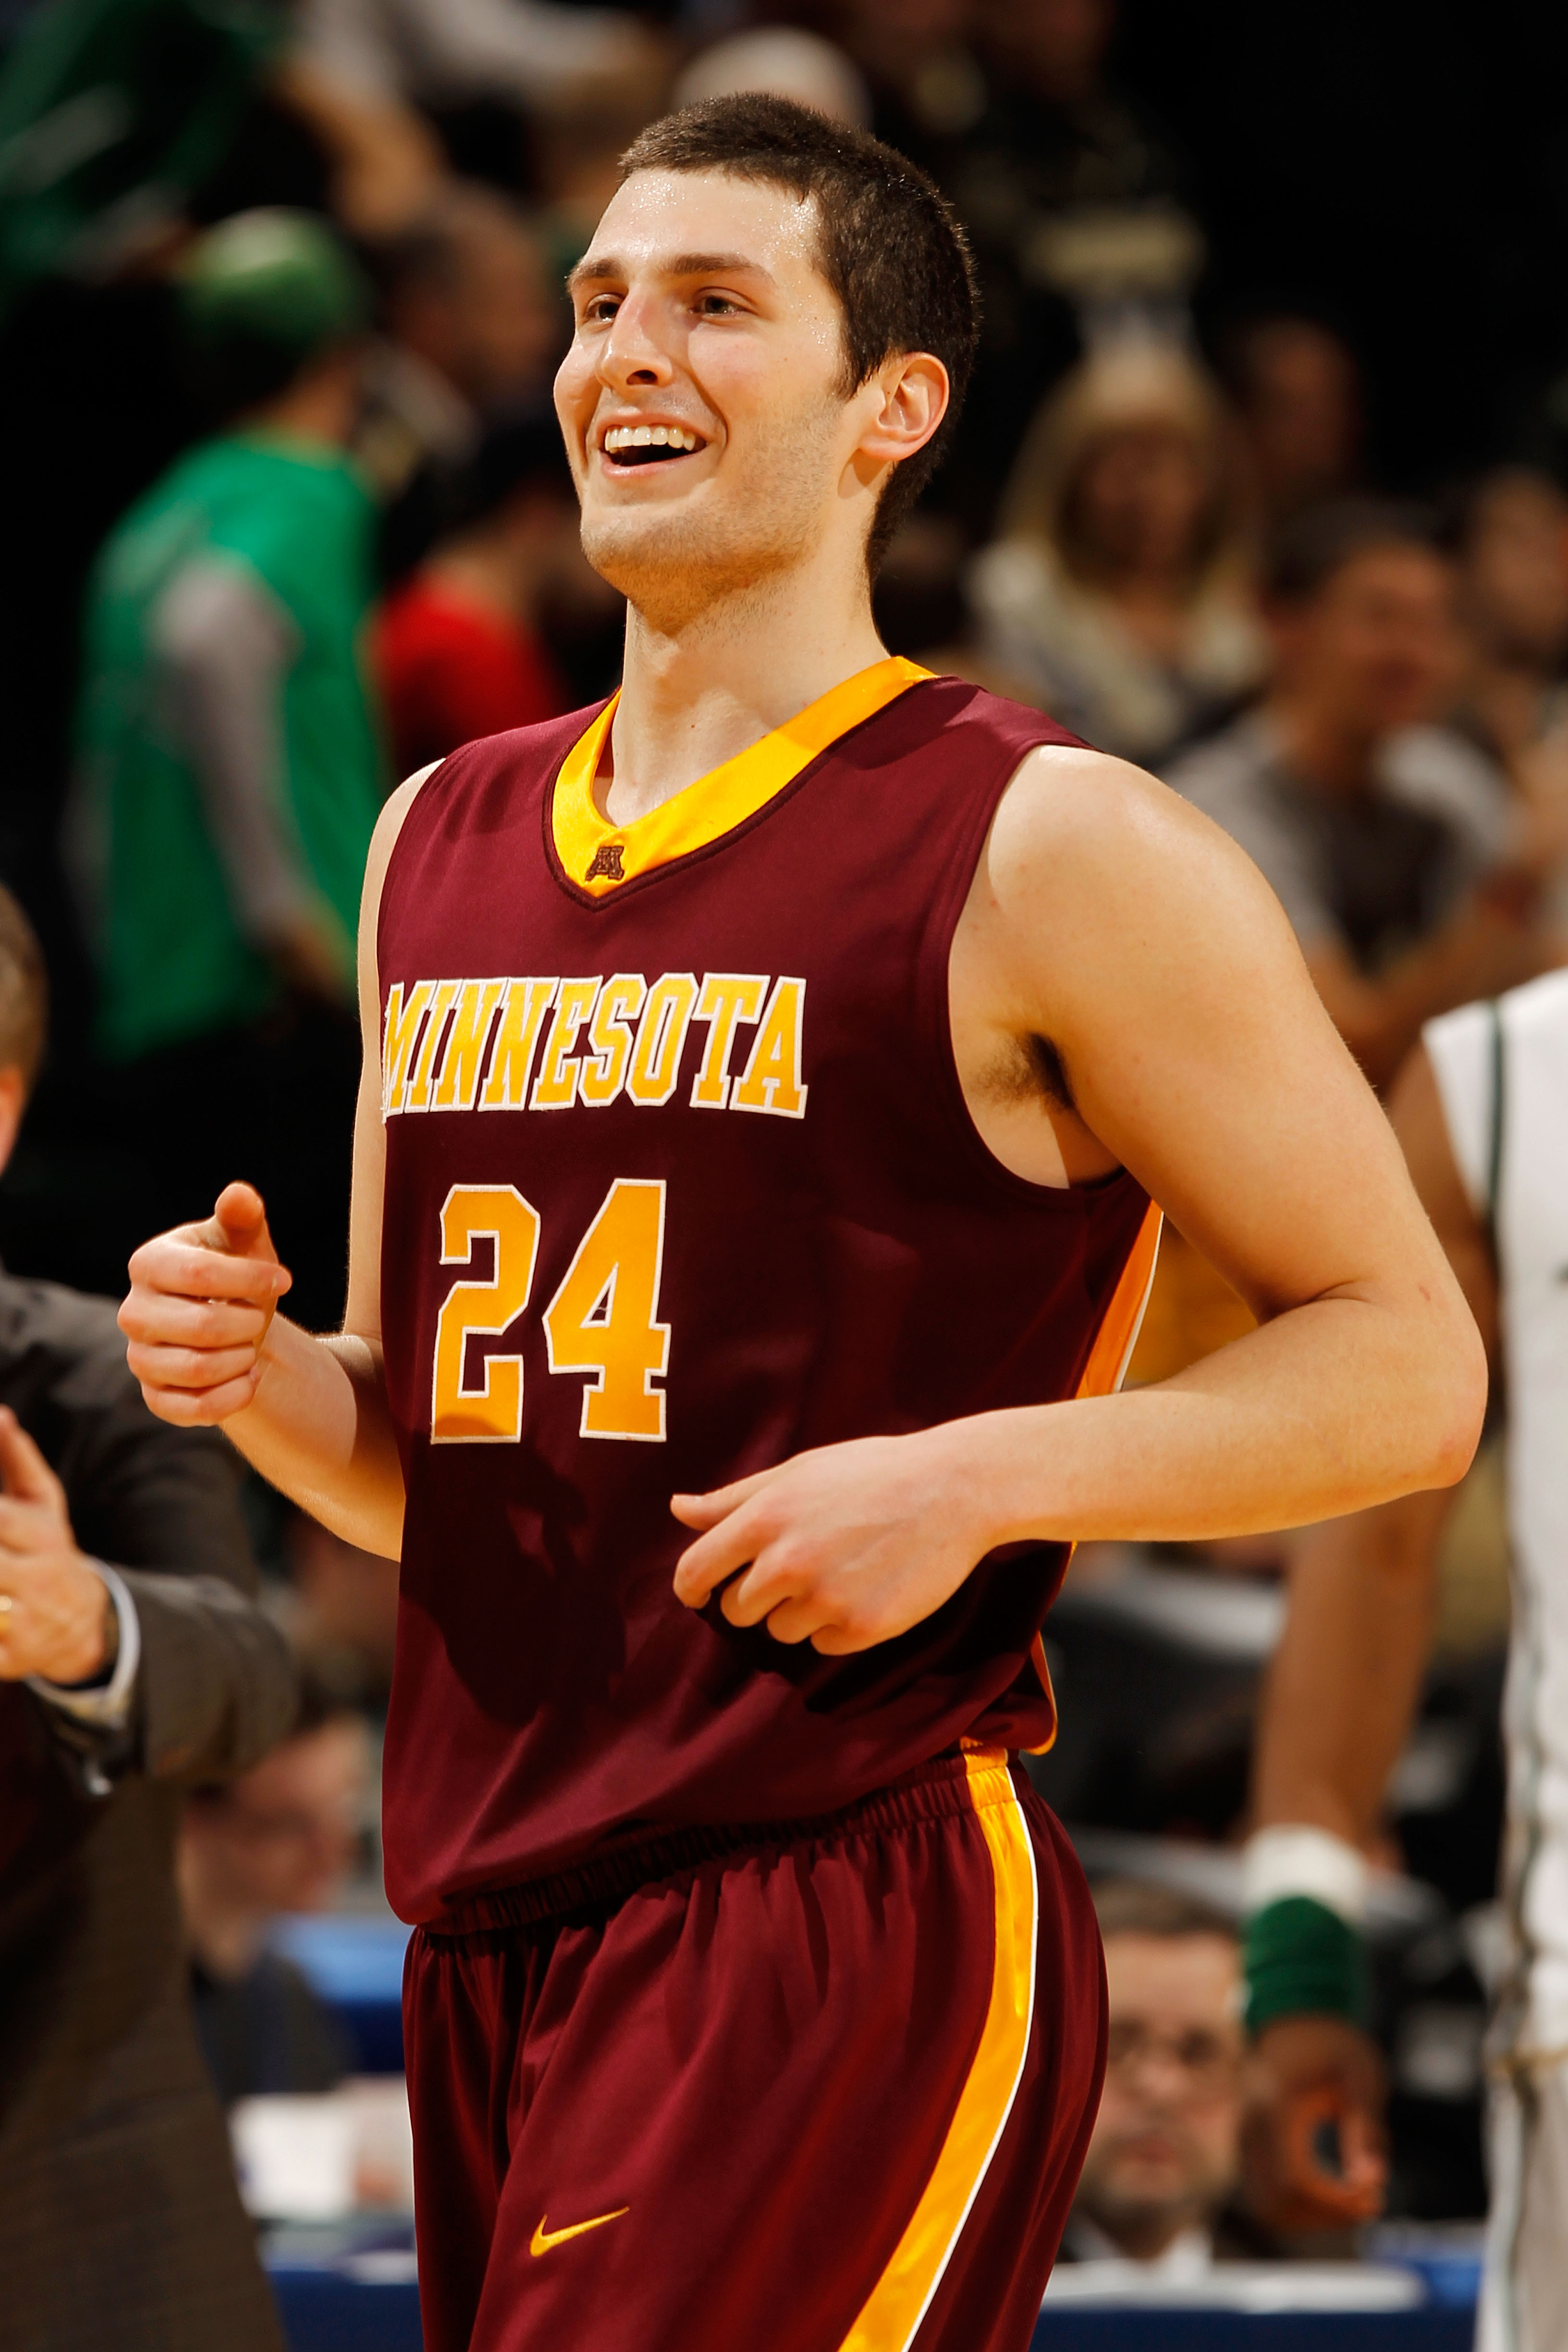 INDIANAPOLIS - MARCH 12:  Guard Blake Hoffarber #24 of the Minnesota Golden Gophers reacts after defeating the Michigan State Spartans 72-67 in overtime of the quarterfinals in the Big Ten Men's Basketball Tournament at Conseco Fieldhouse on March 12, 201